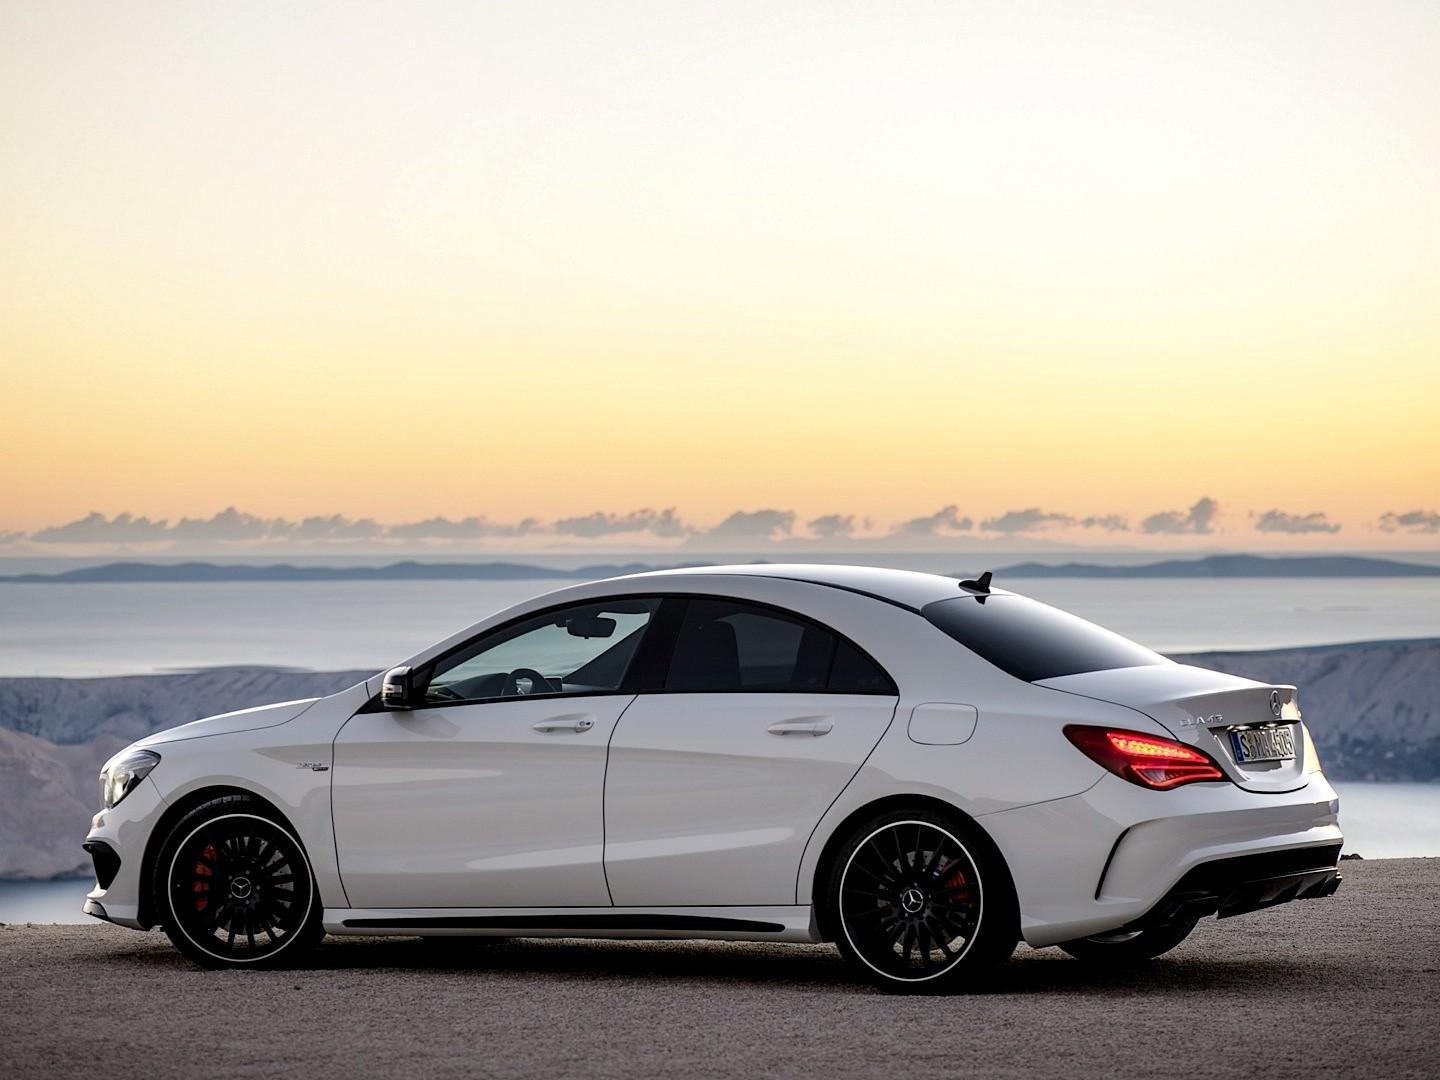 Mercedes benz cla 45 amg wallpaper hd download for Benz mercedes cla